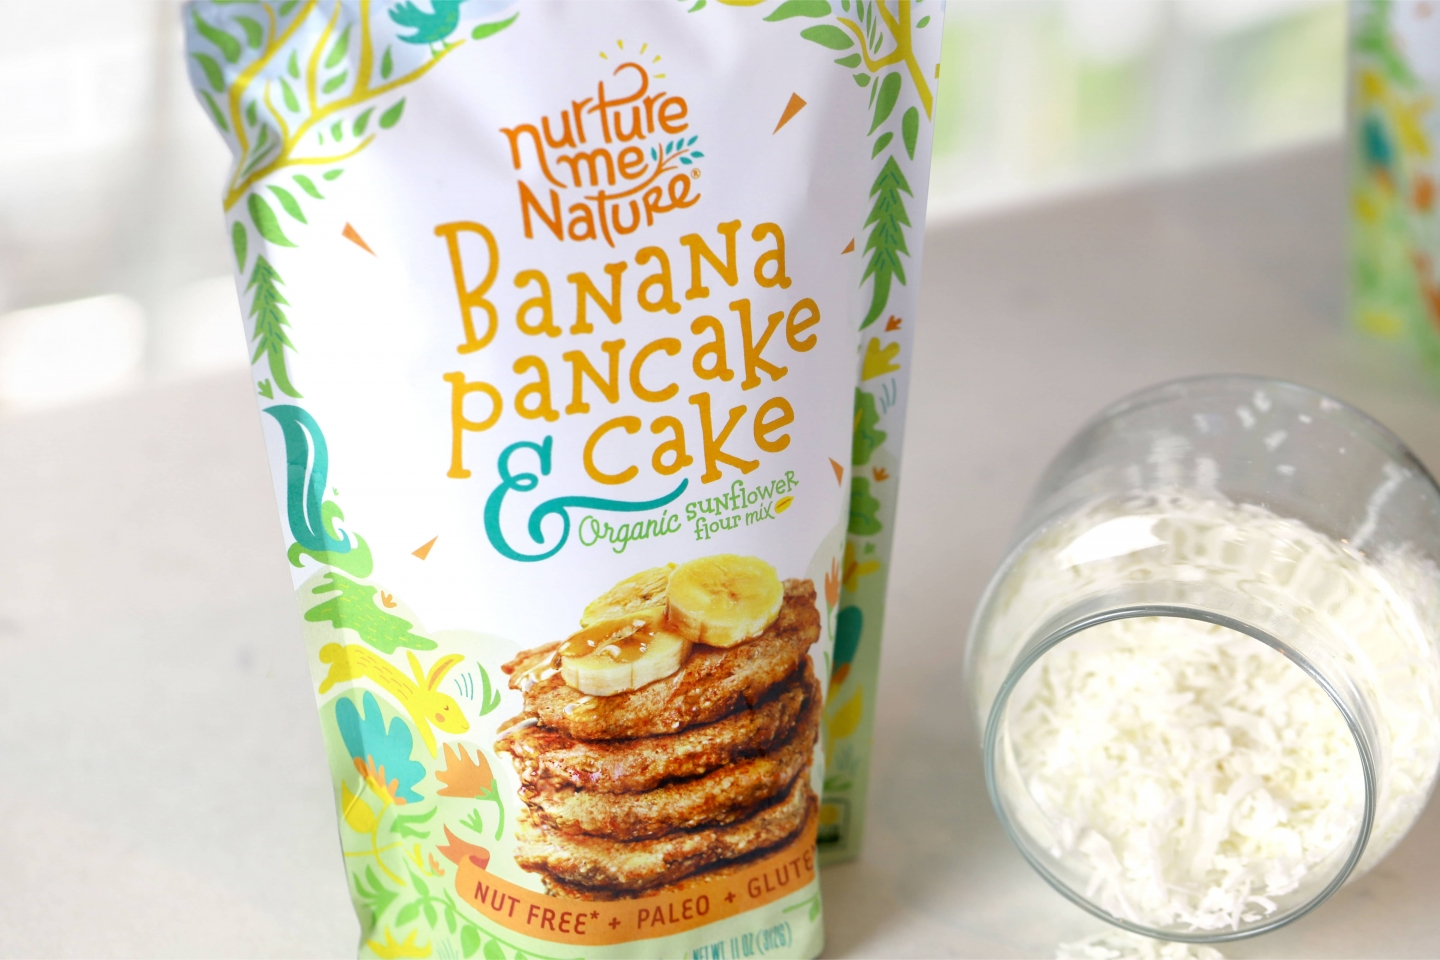 Nurture Me Nature packaging Banana Pancake flavor in kitchen setting